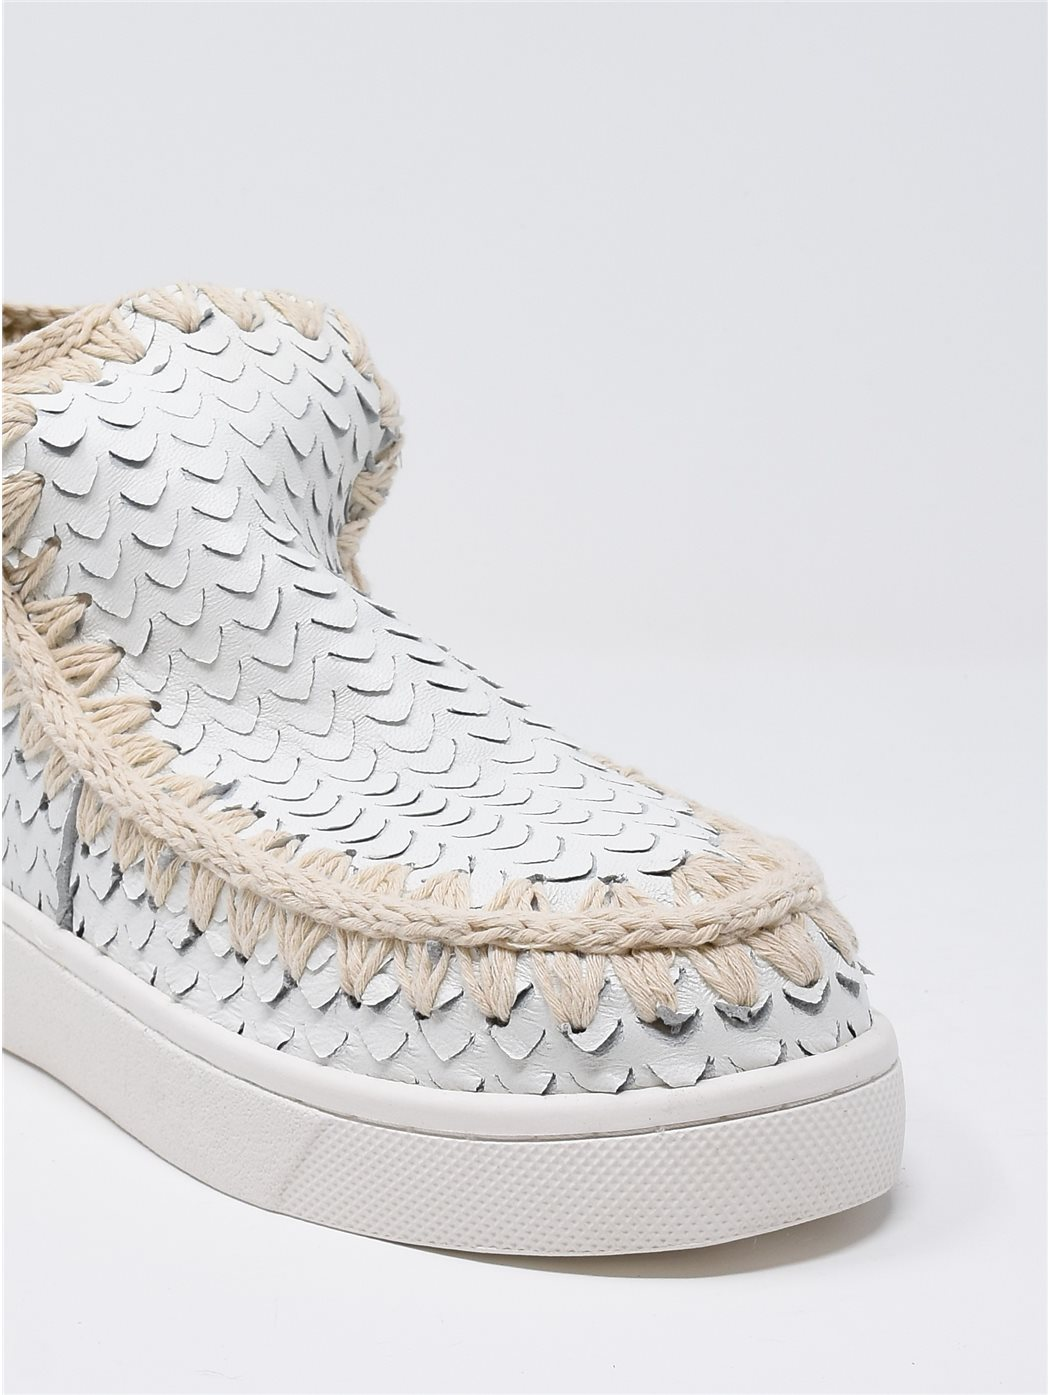 MOU SUMMER SCAWHI SNEAKERS